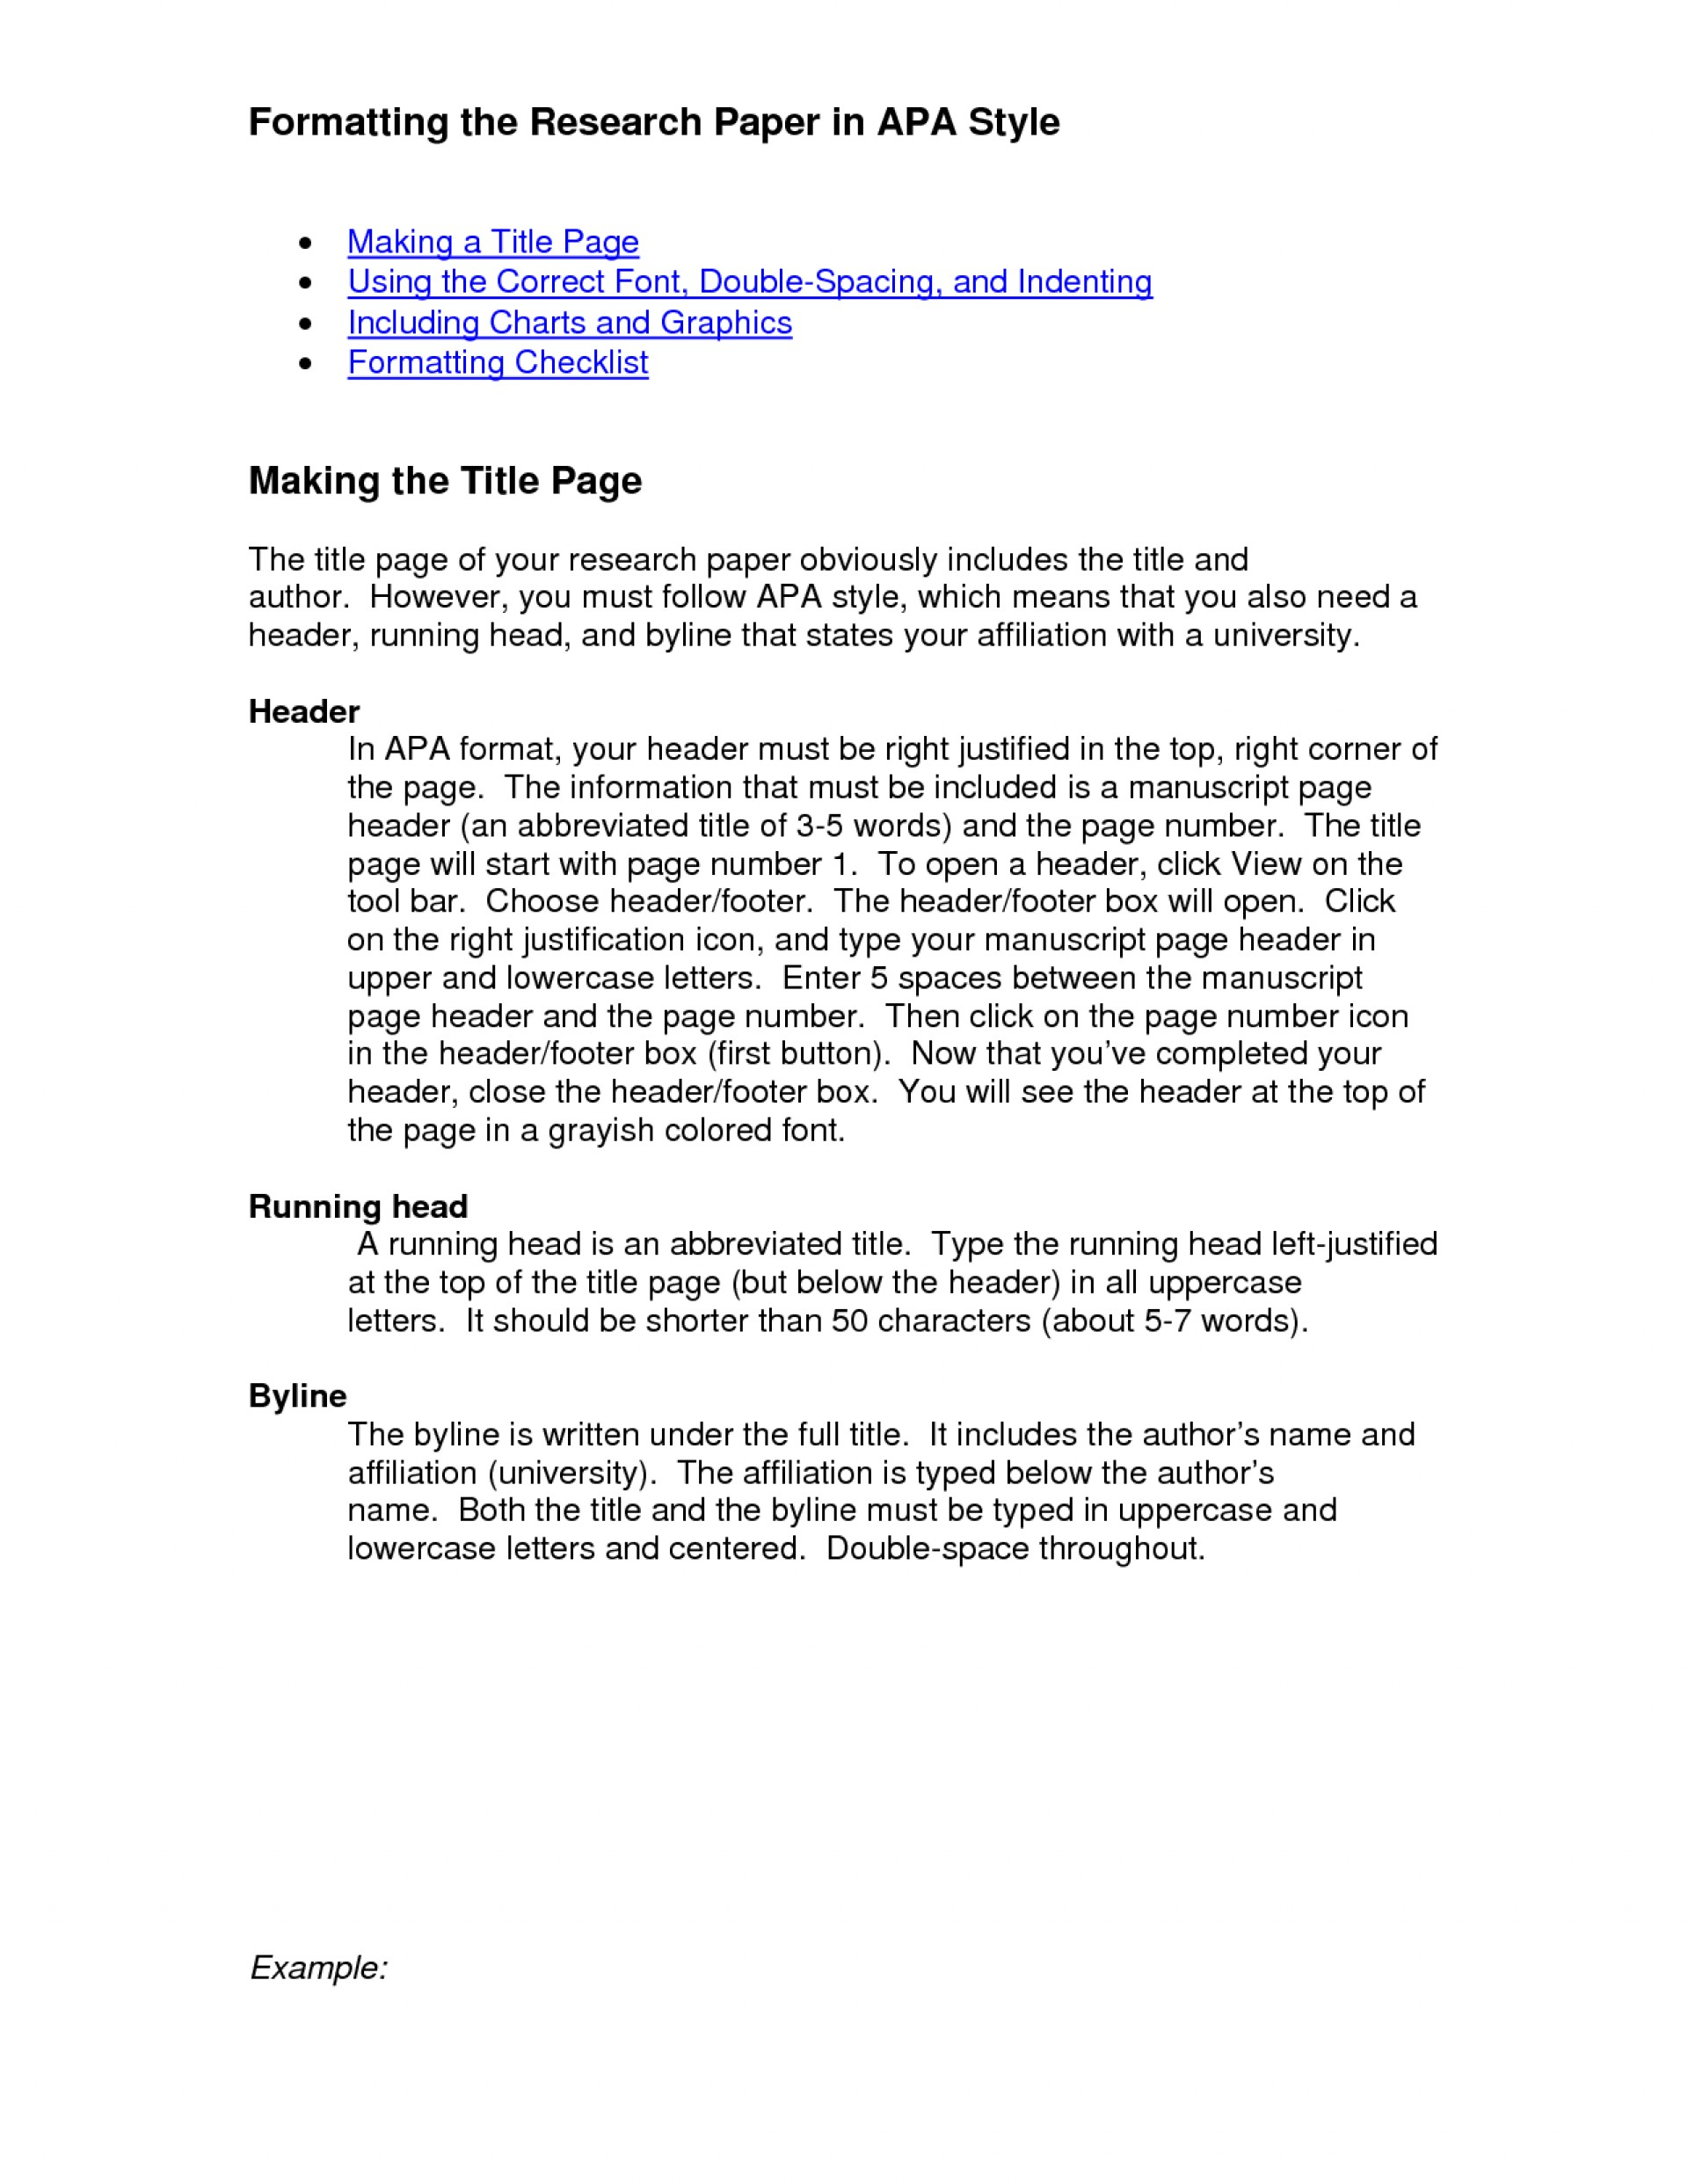 006 Format For Research Paper Apa Style Fotolipcom Rich Image And Wallpaper Template L Imposing Layout Of A Sample Argumentative Formatting Youtube 1920